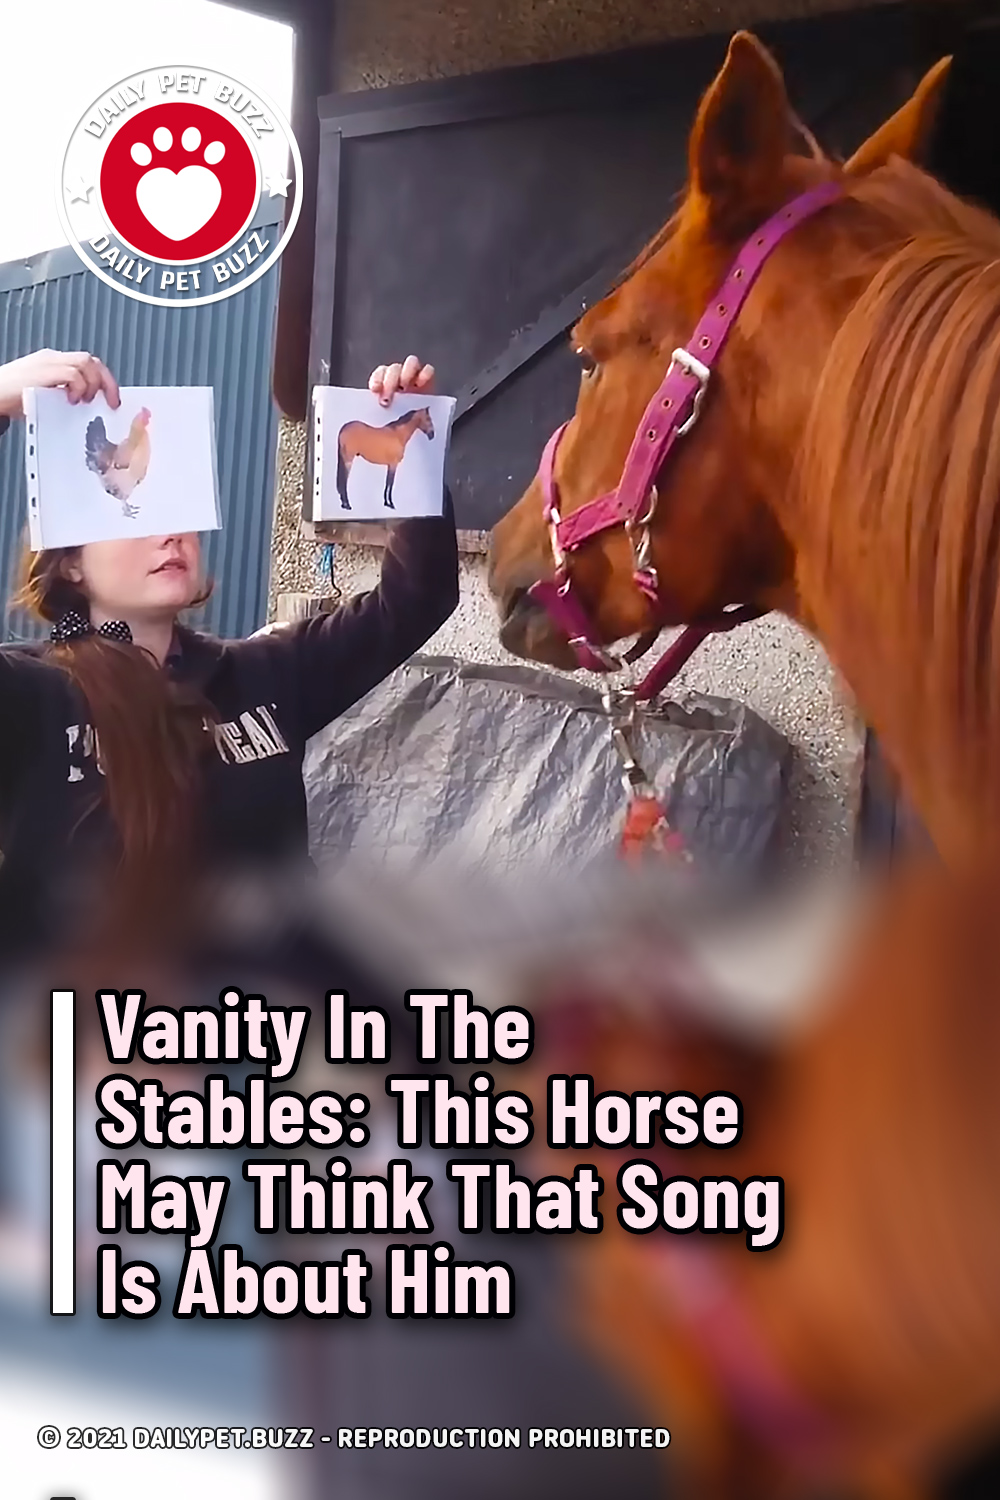 Vanity In The Stables: This Horse May Think That Song Is About Him